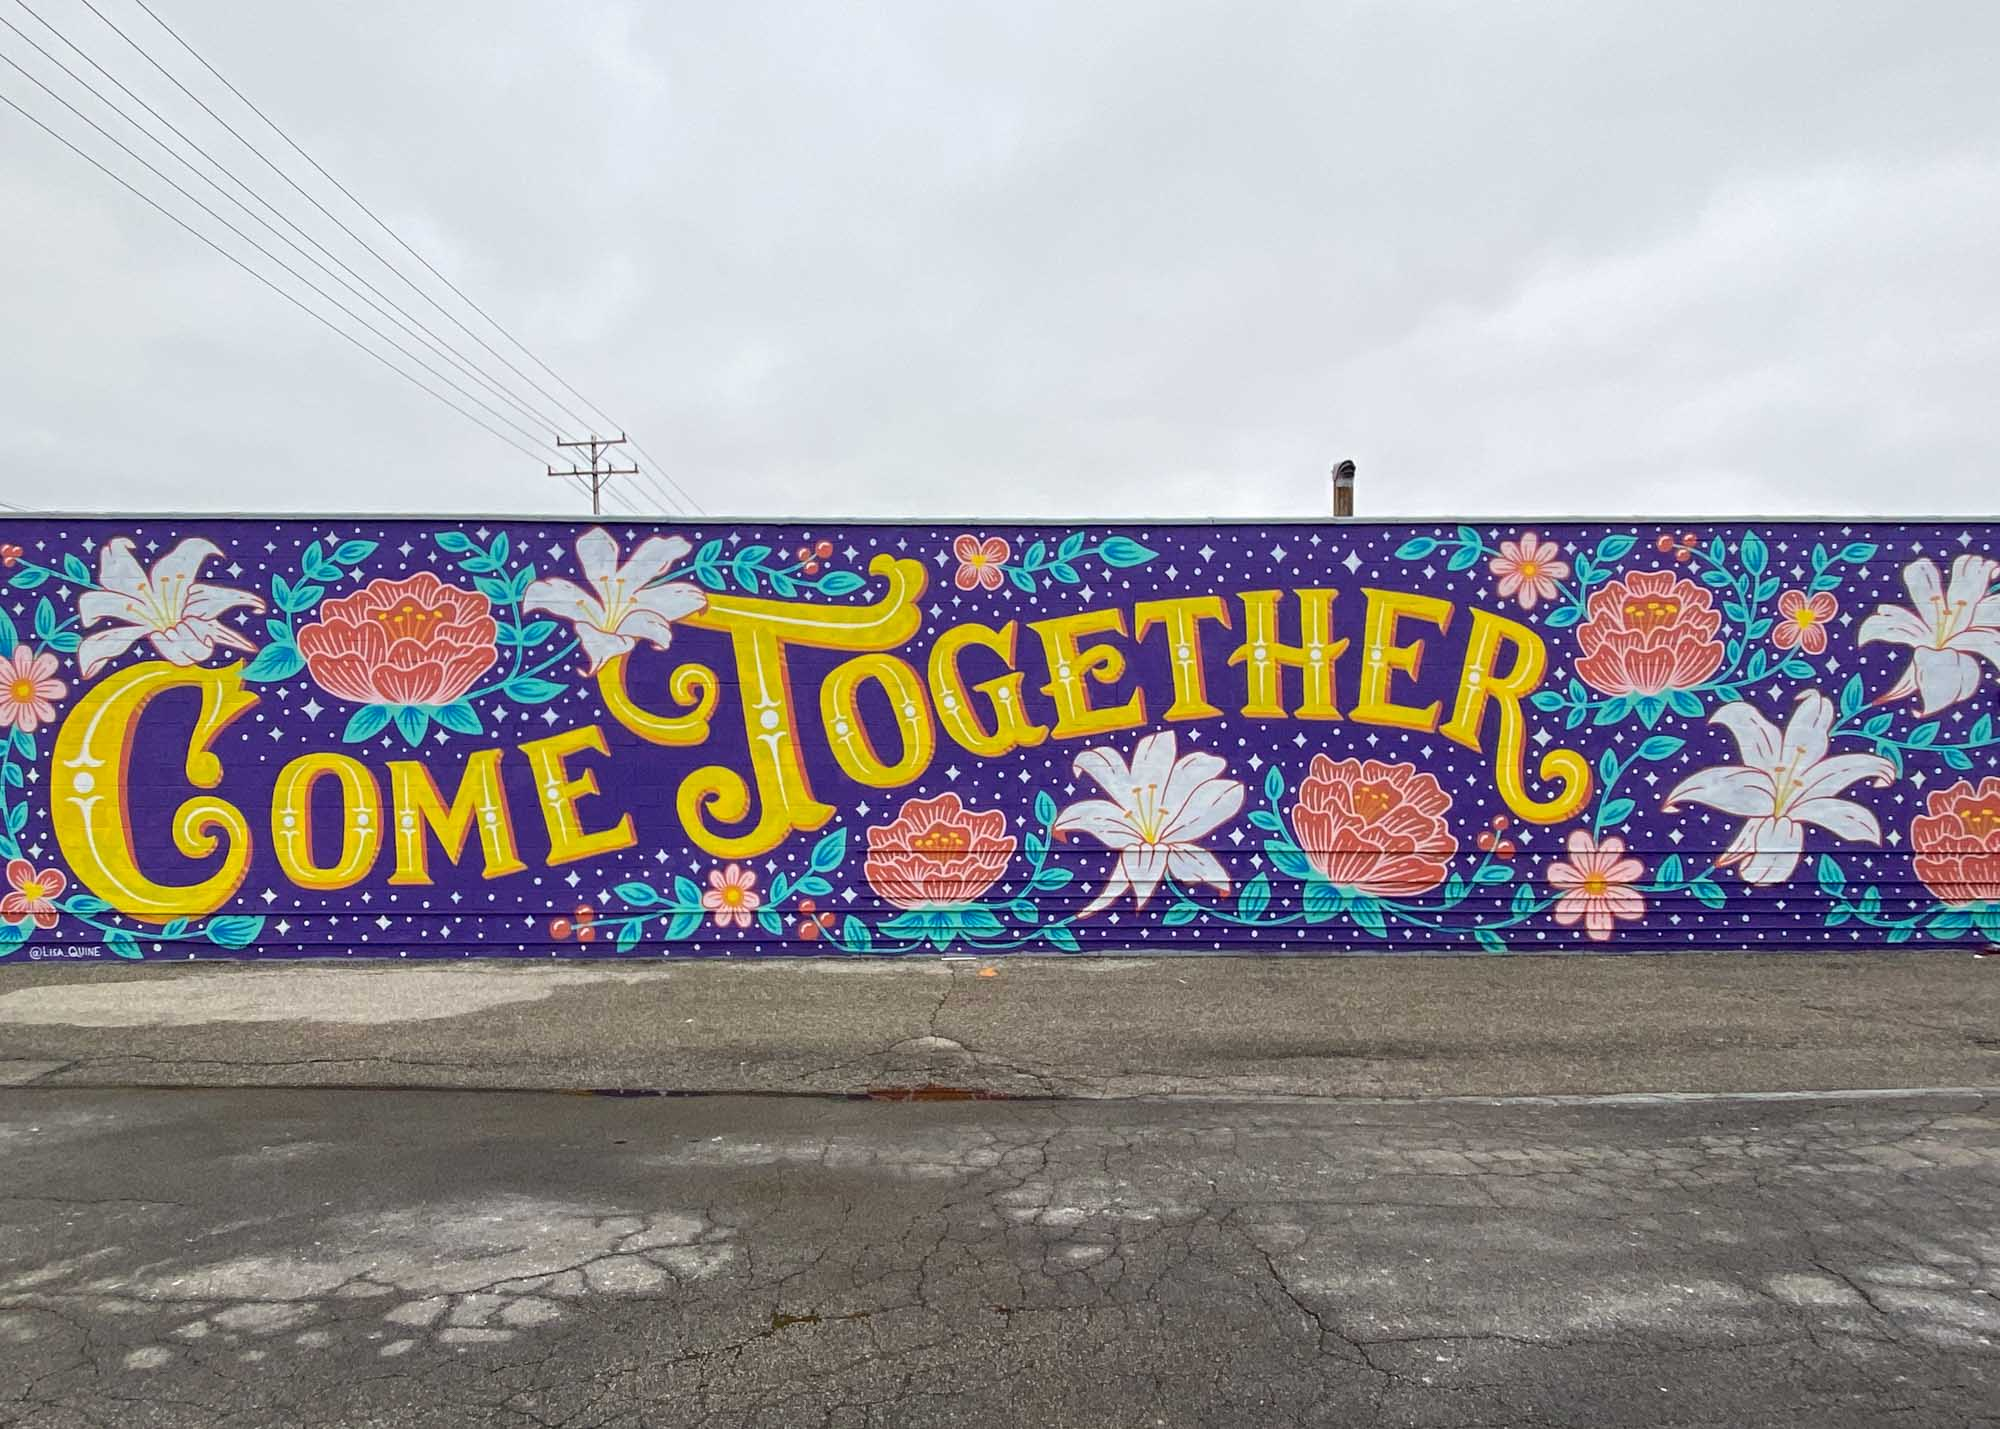 15 Cleveland-Related Things to Do in Self-Isolation (Plus a Free Bingo Card!)